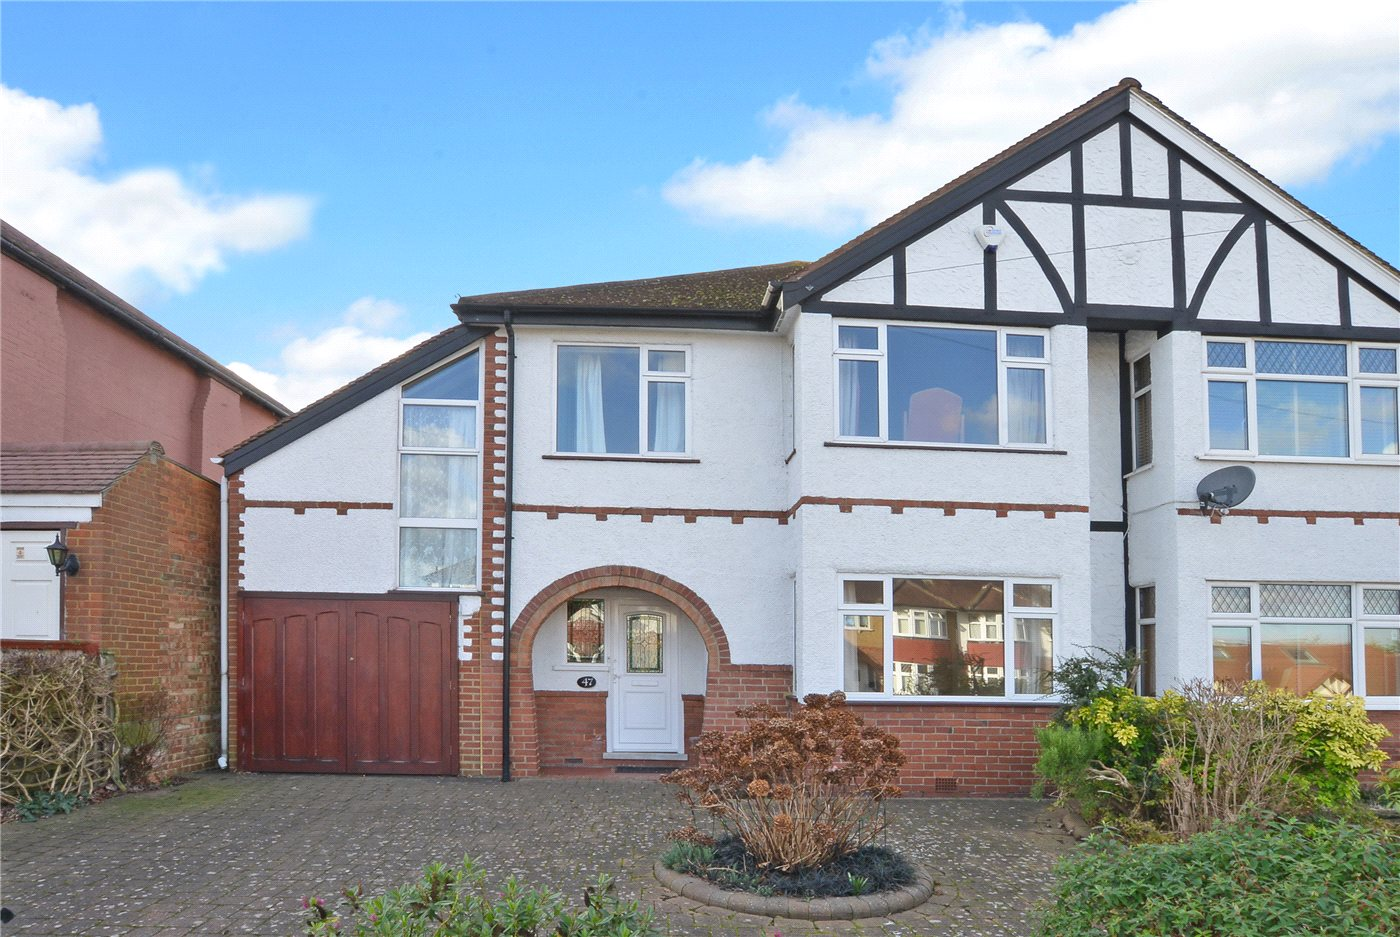 4 Bedrooms Semi Detached House for sale in St. Clair Drive, Worcester Park, KT4